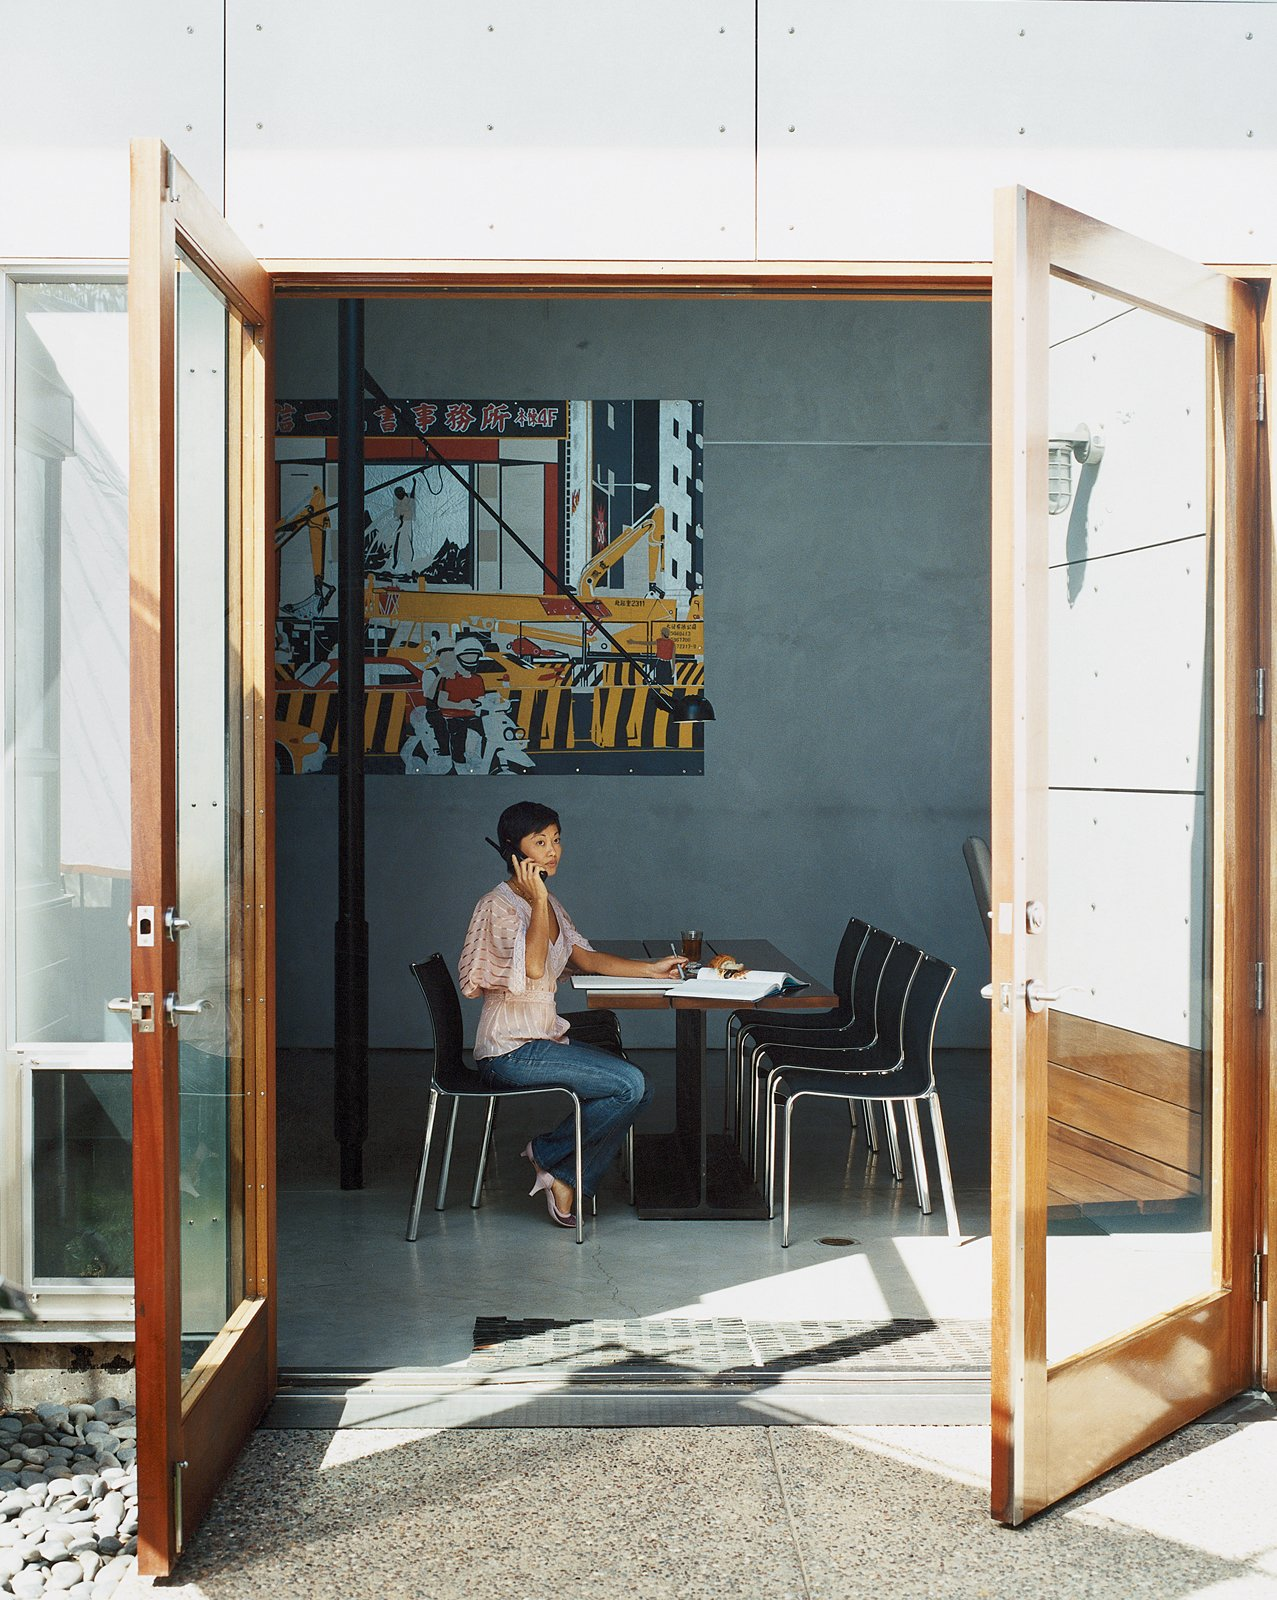 """May Lawrence sits at the dining table, which features mahogany planks attached to an actual I beam. Above her sprawls a Rigo 99 painting of a bustling Taipei street scene, which according to Ward helps import some """"city energy"""" into the suburbs.  Photo 7 of 14 in 12 """"Pro-Tips"""" For Installing Wallpaper in Your Home from The New Suburbanism"""